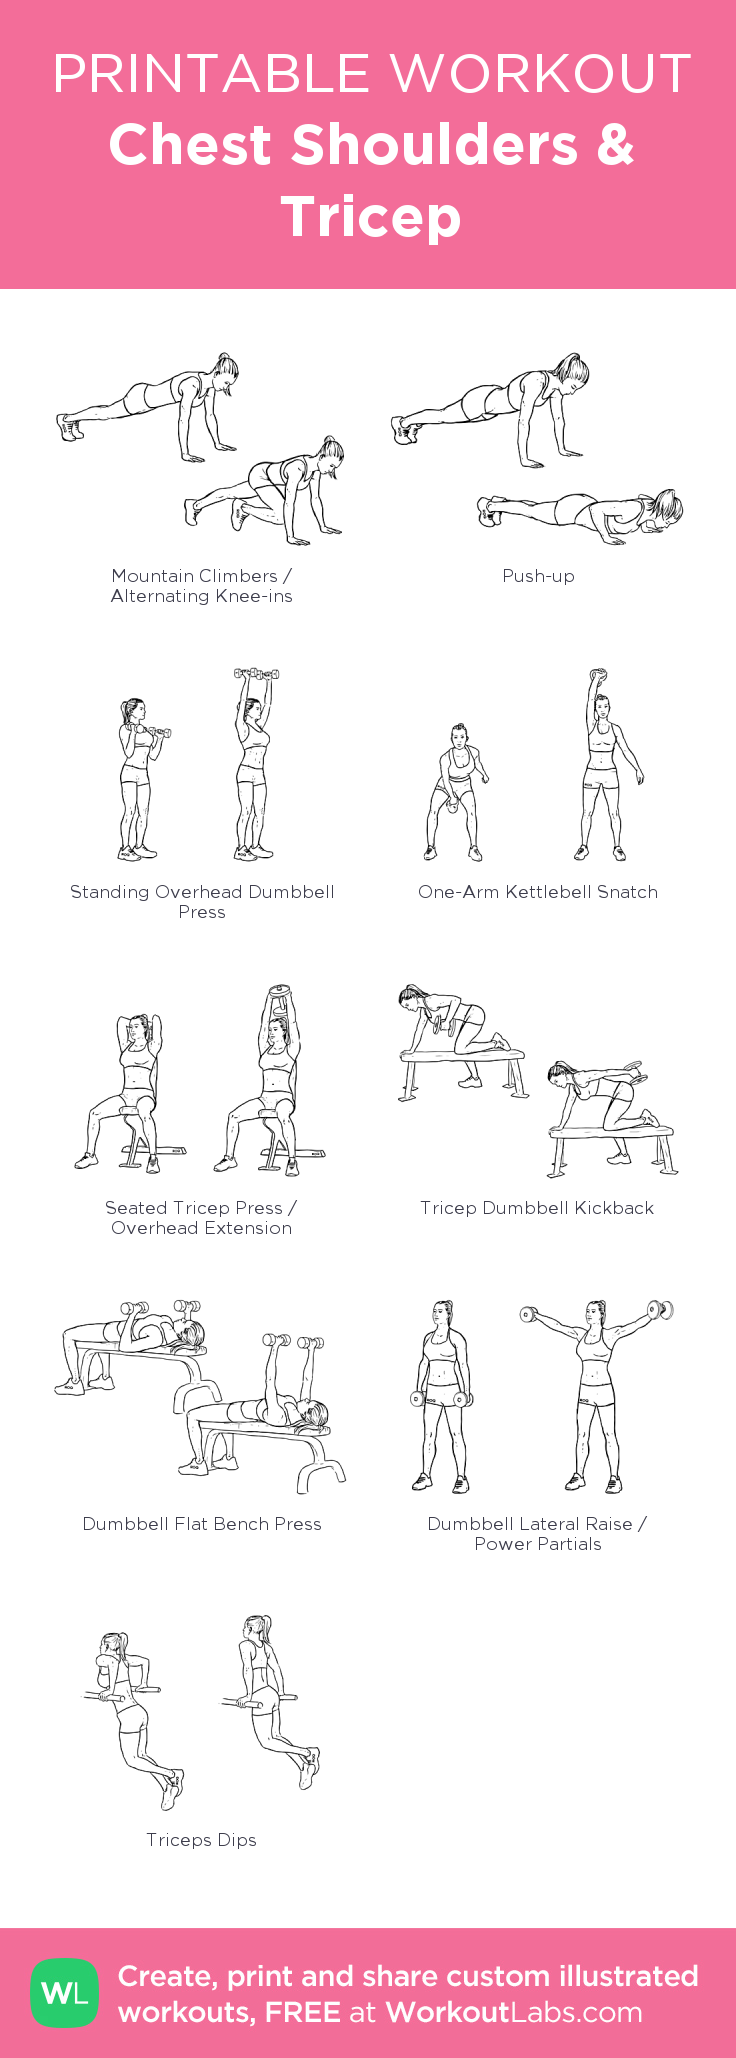 Chest Shoulders & Tricep my visual workout created at